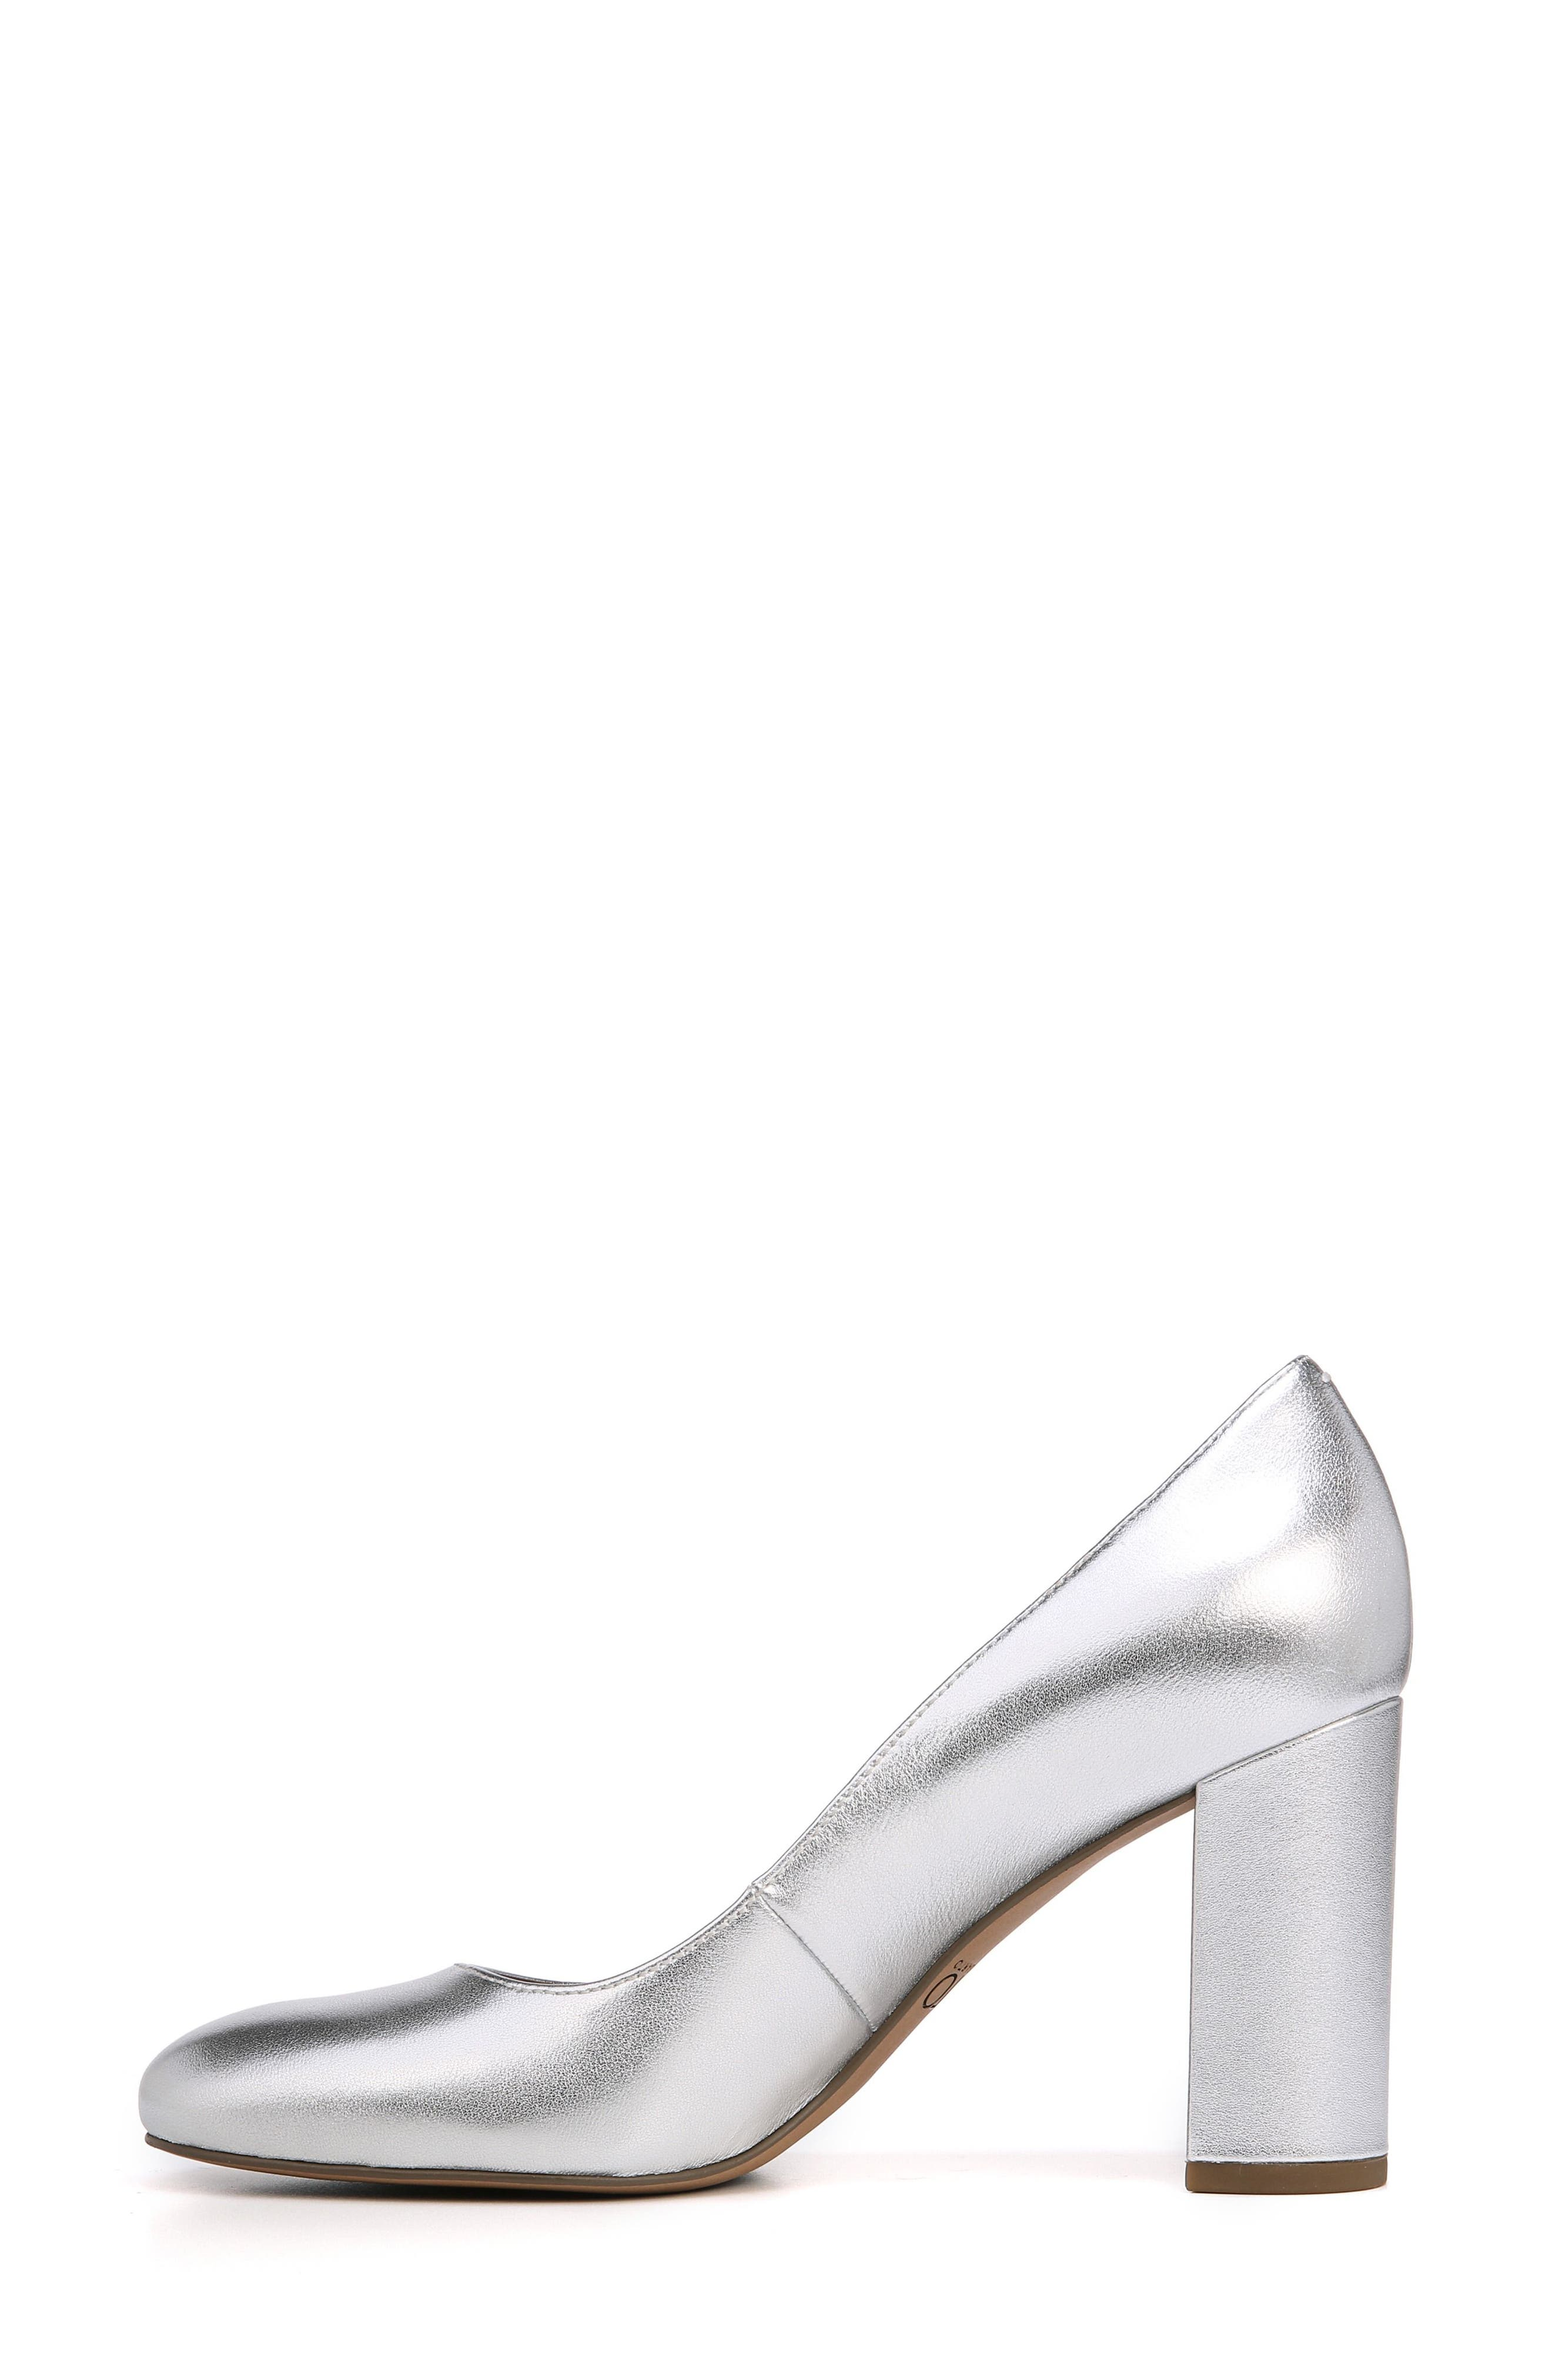 Aziza Block Heel Pump,                             Alternate thumbnail 3, color,                             Silver Leather